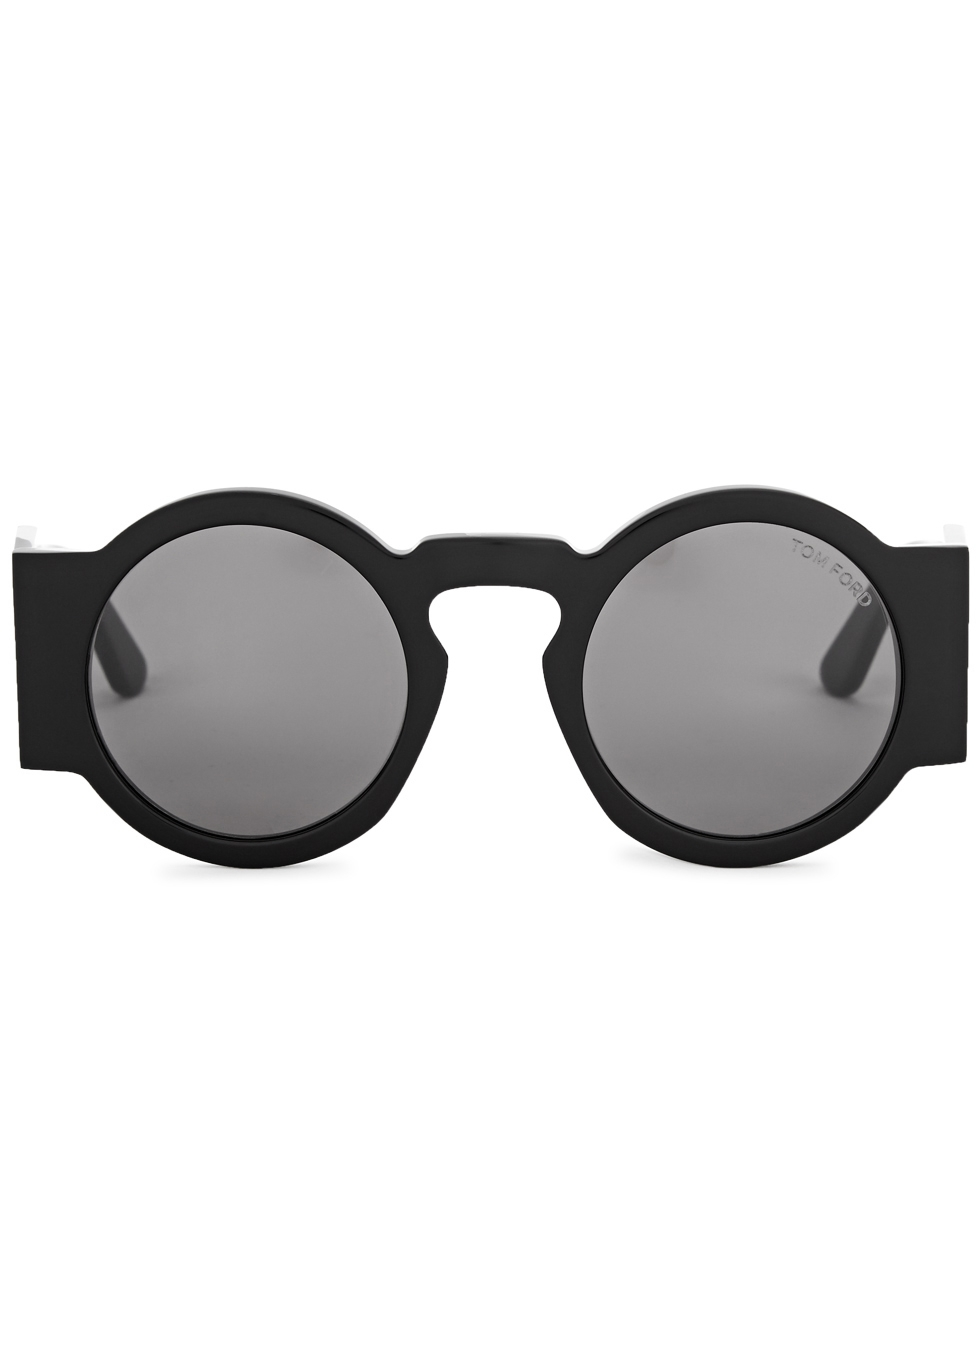 Tatiana black round-frame sunglasses - Tom Ford Eyewear